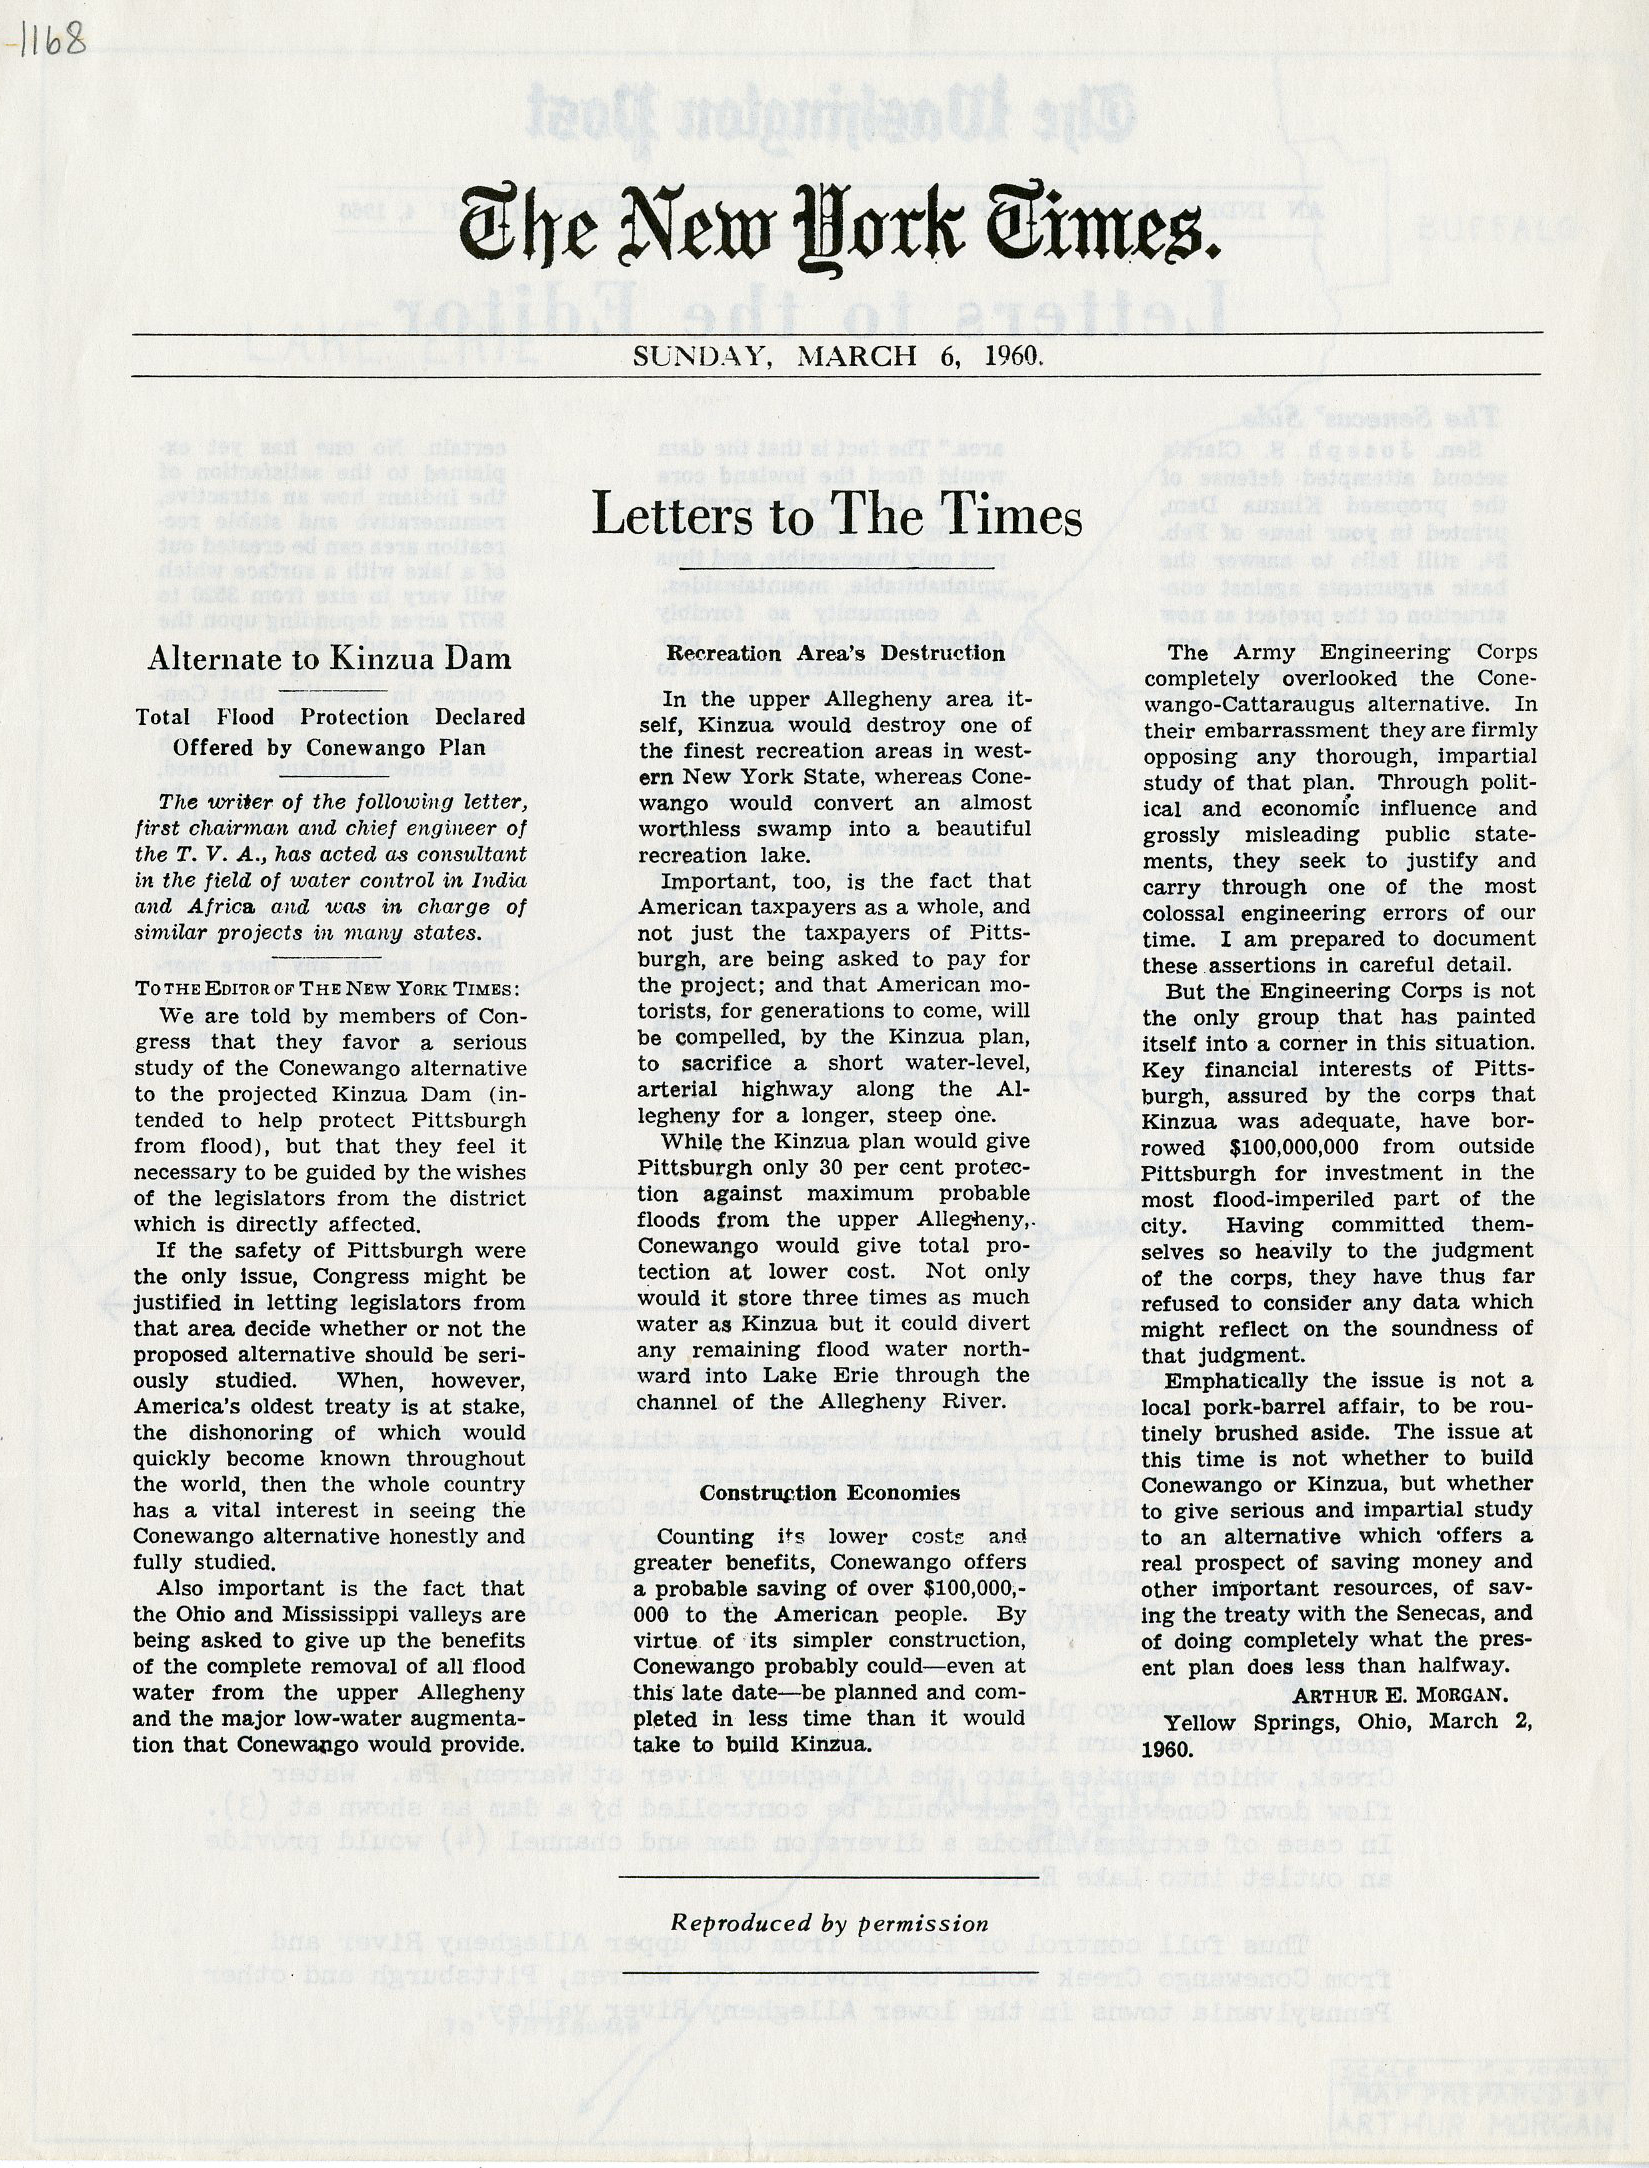 New York Times Letter to the Times, The Washington Post Letters to